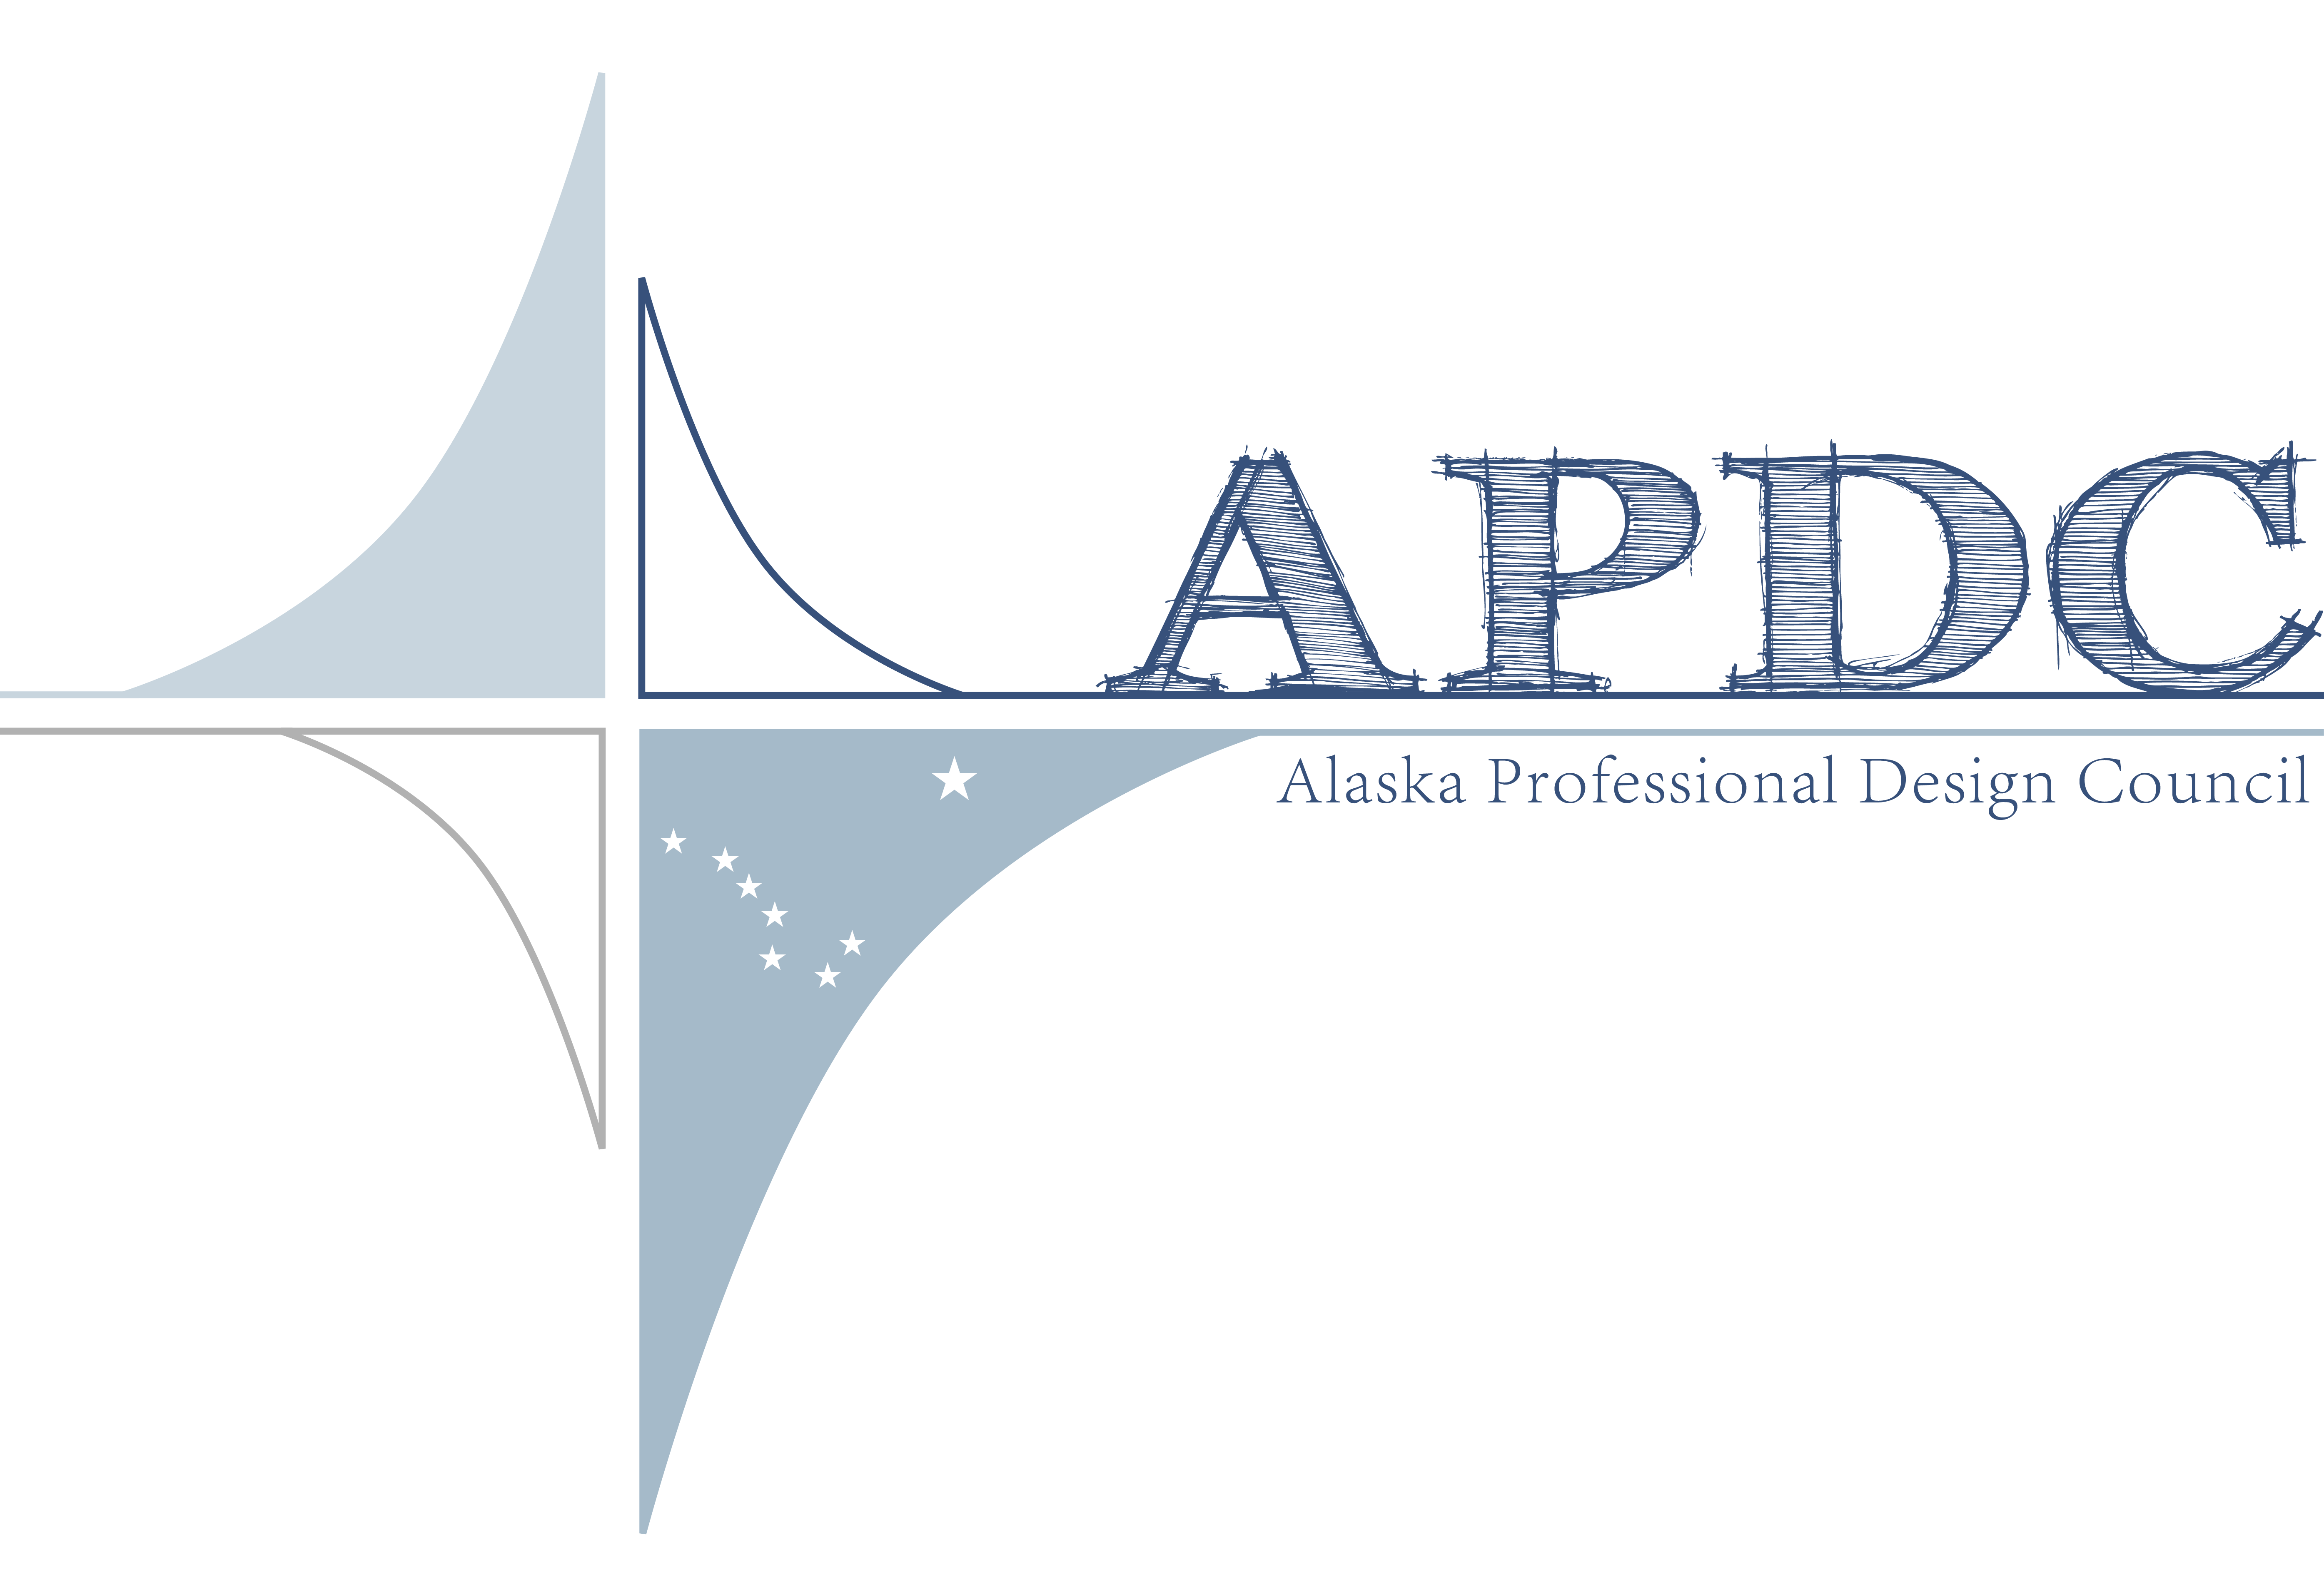 Alaska Professional Design Council